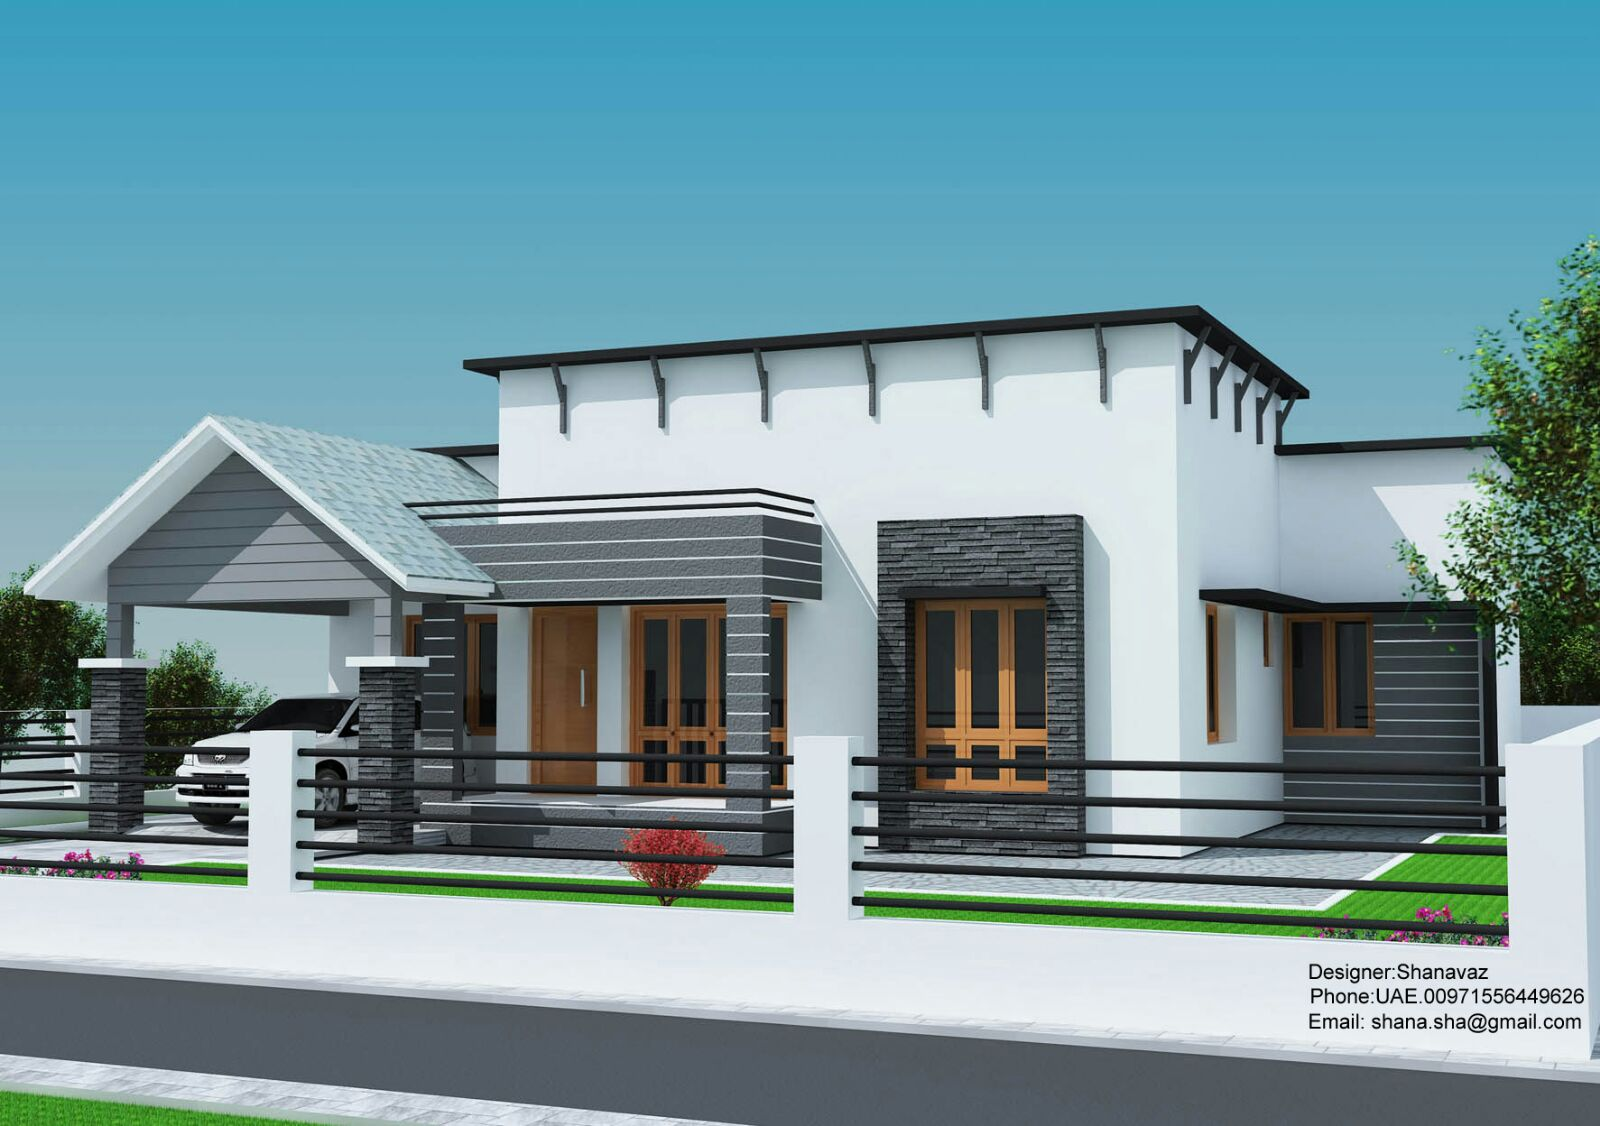 1300 sq ft single floor contemporary home design for Modern house plans 2015